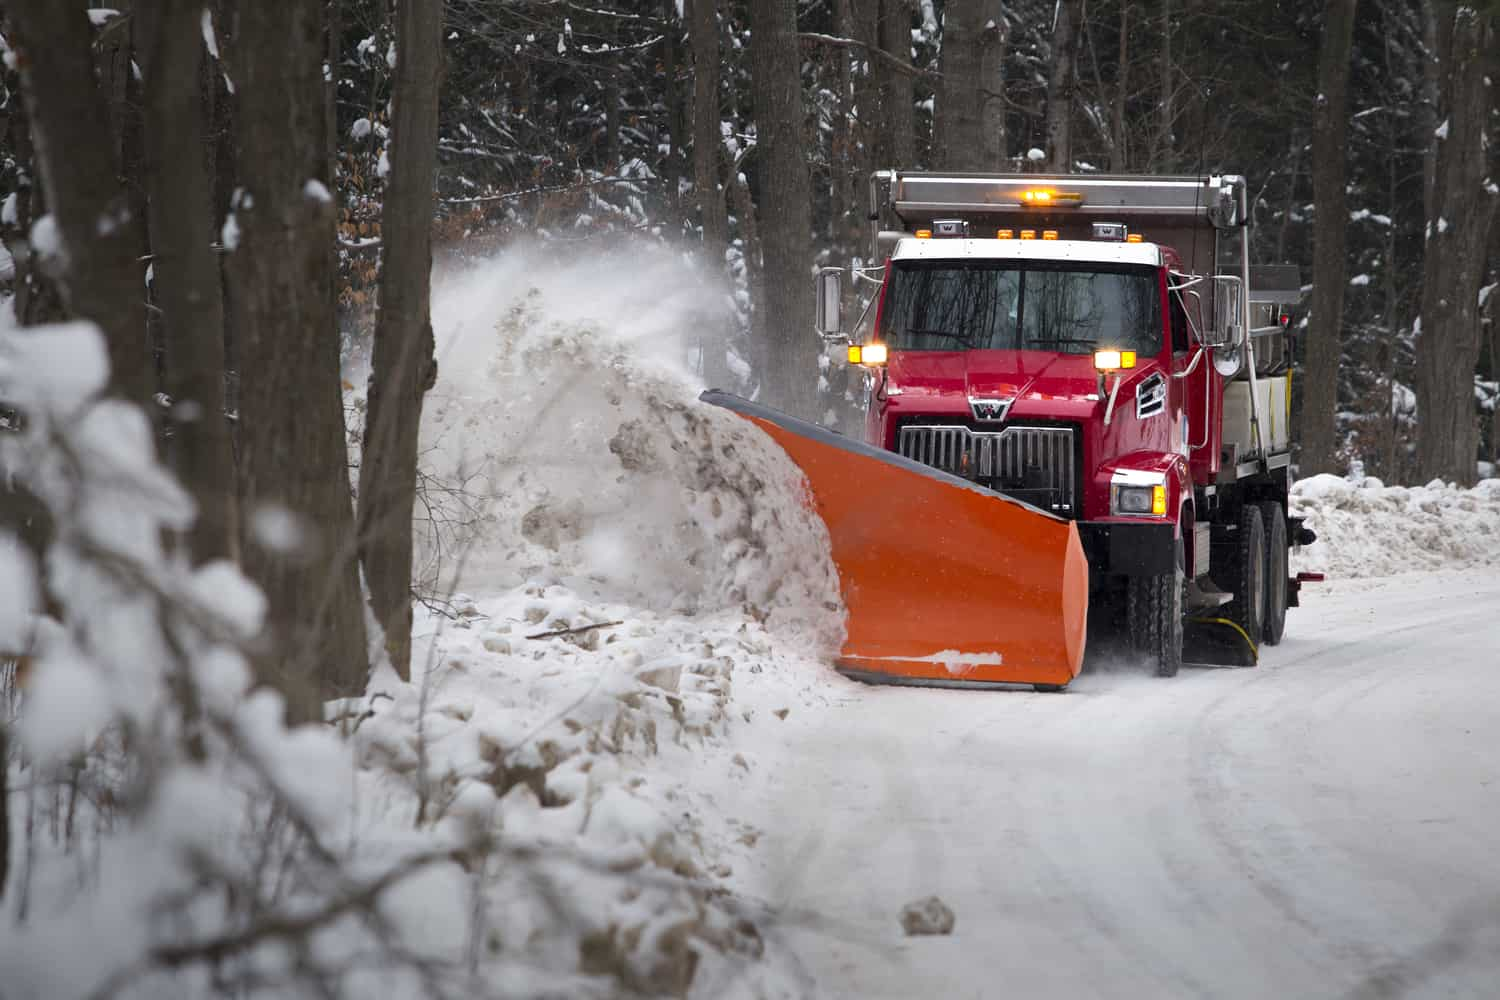 Western Star 4700, municipal plow